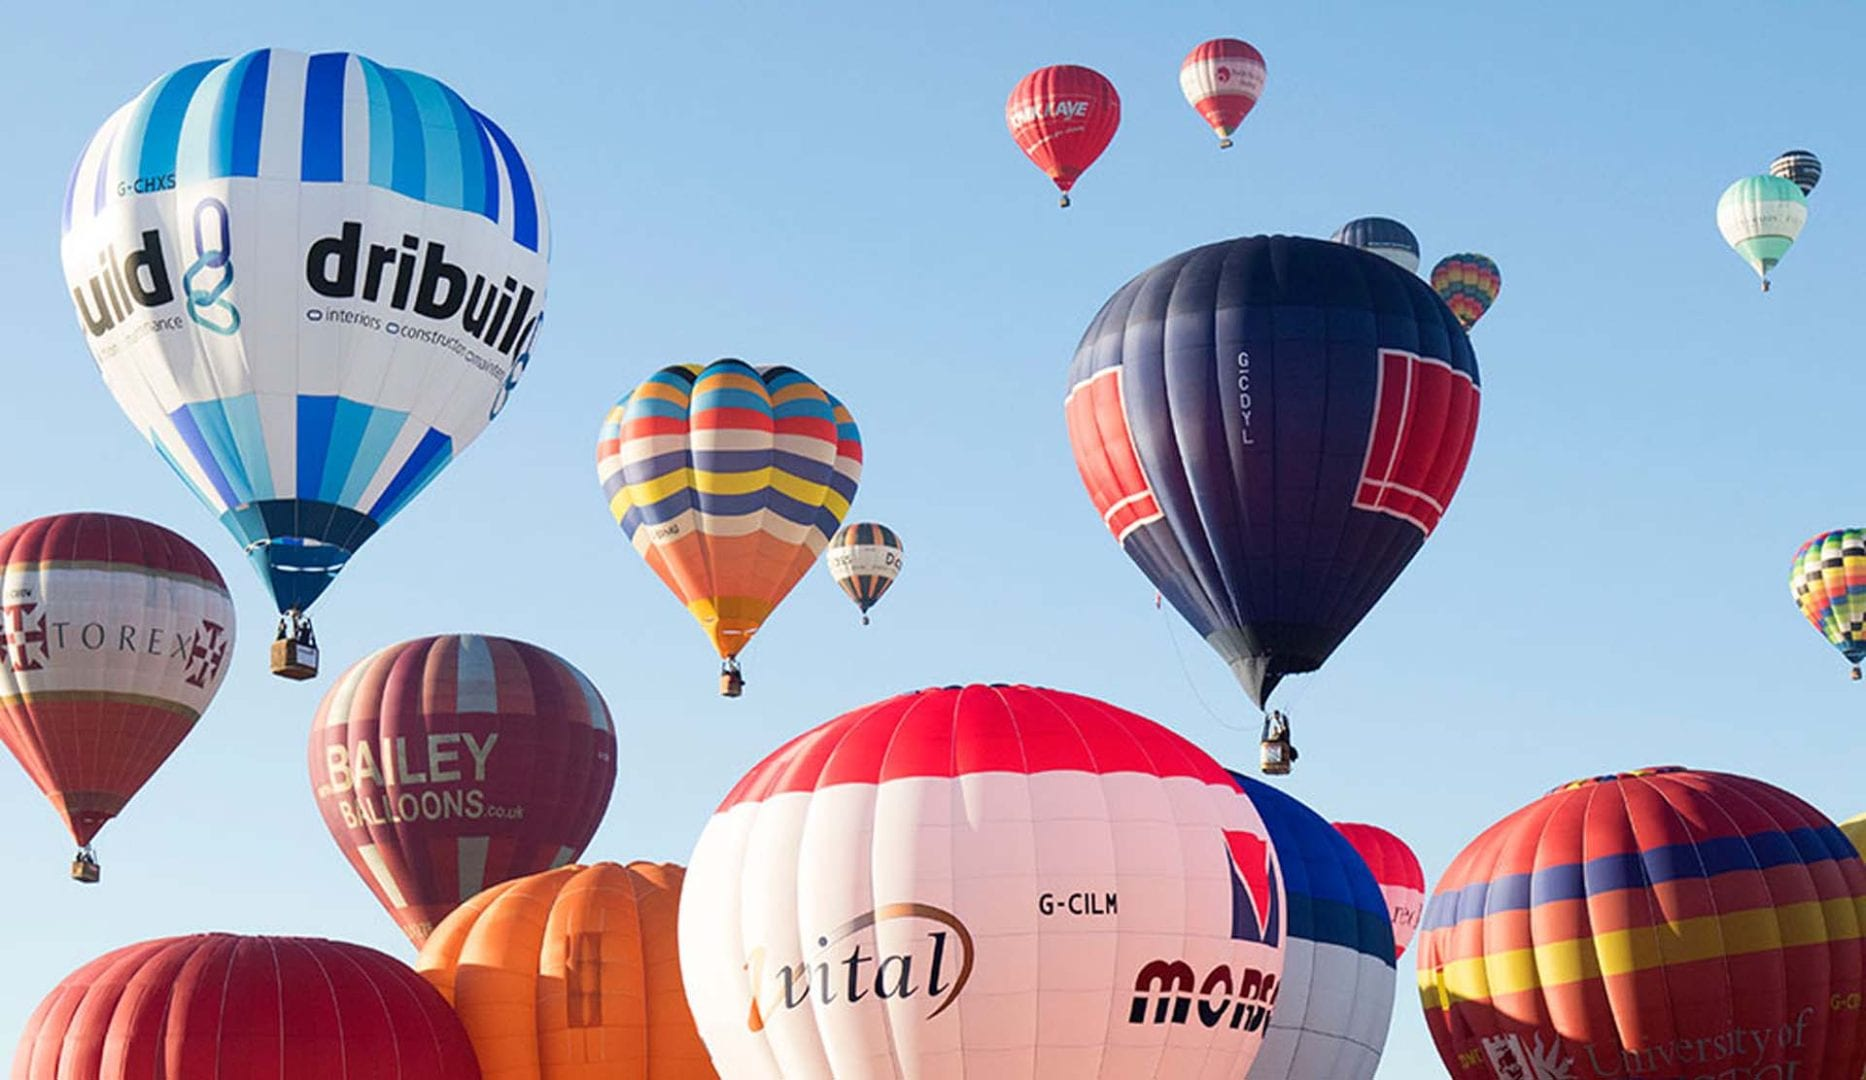 Bristol Balloon Fest. Stay at Full Moon Backpackers